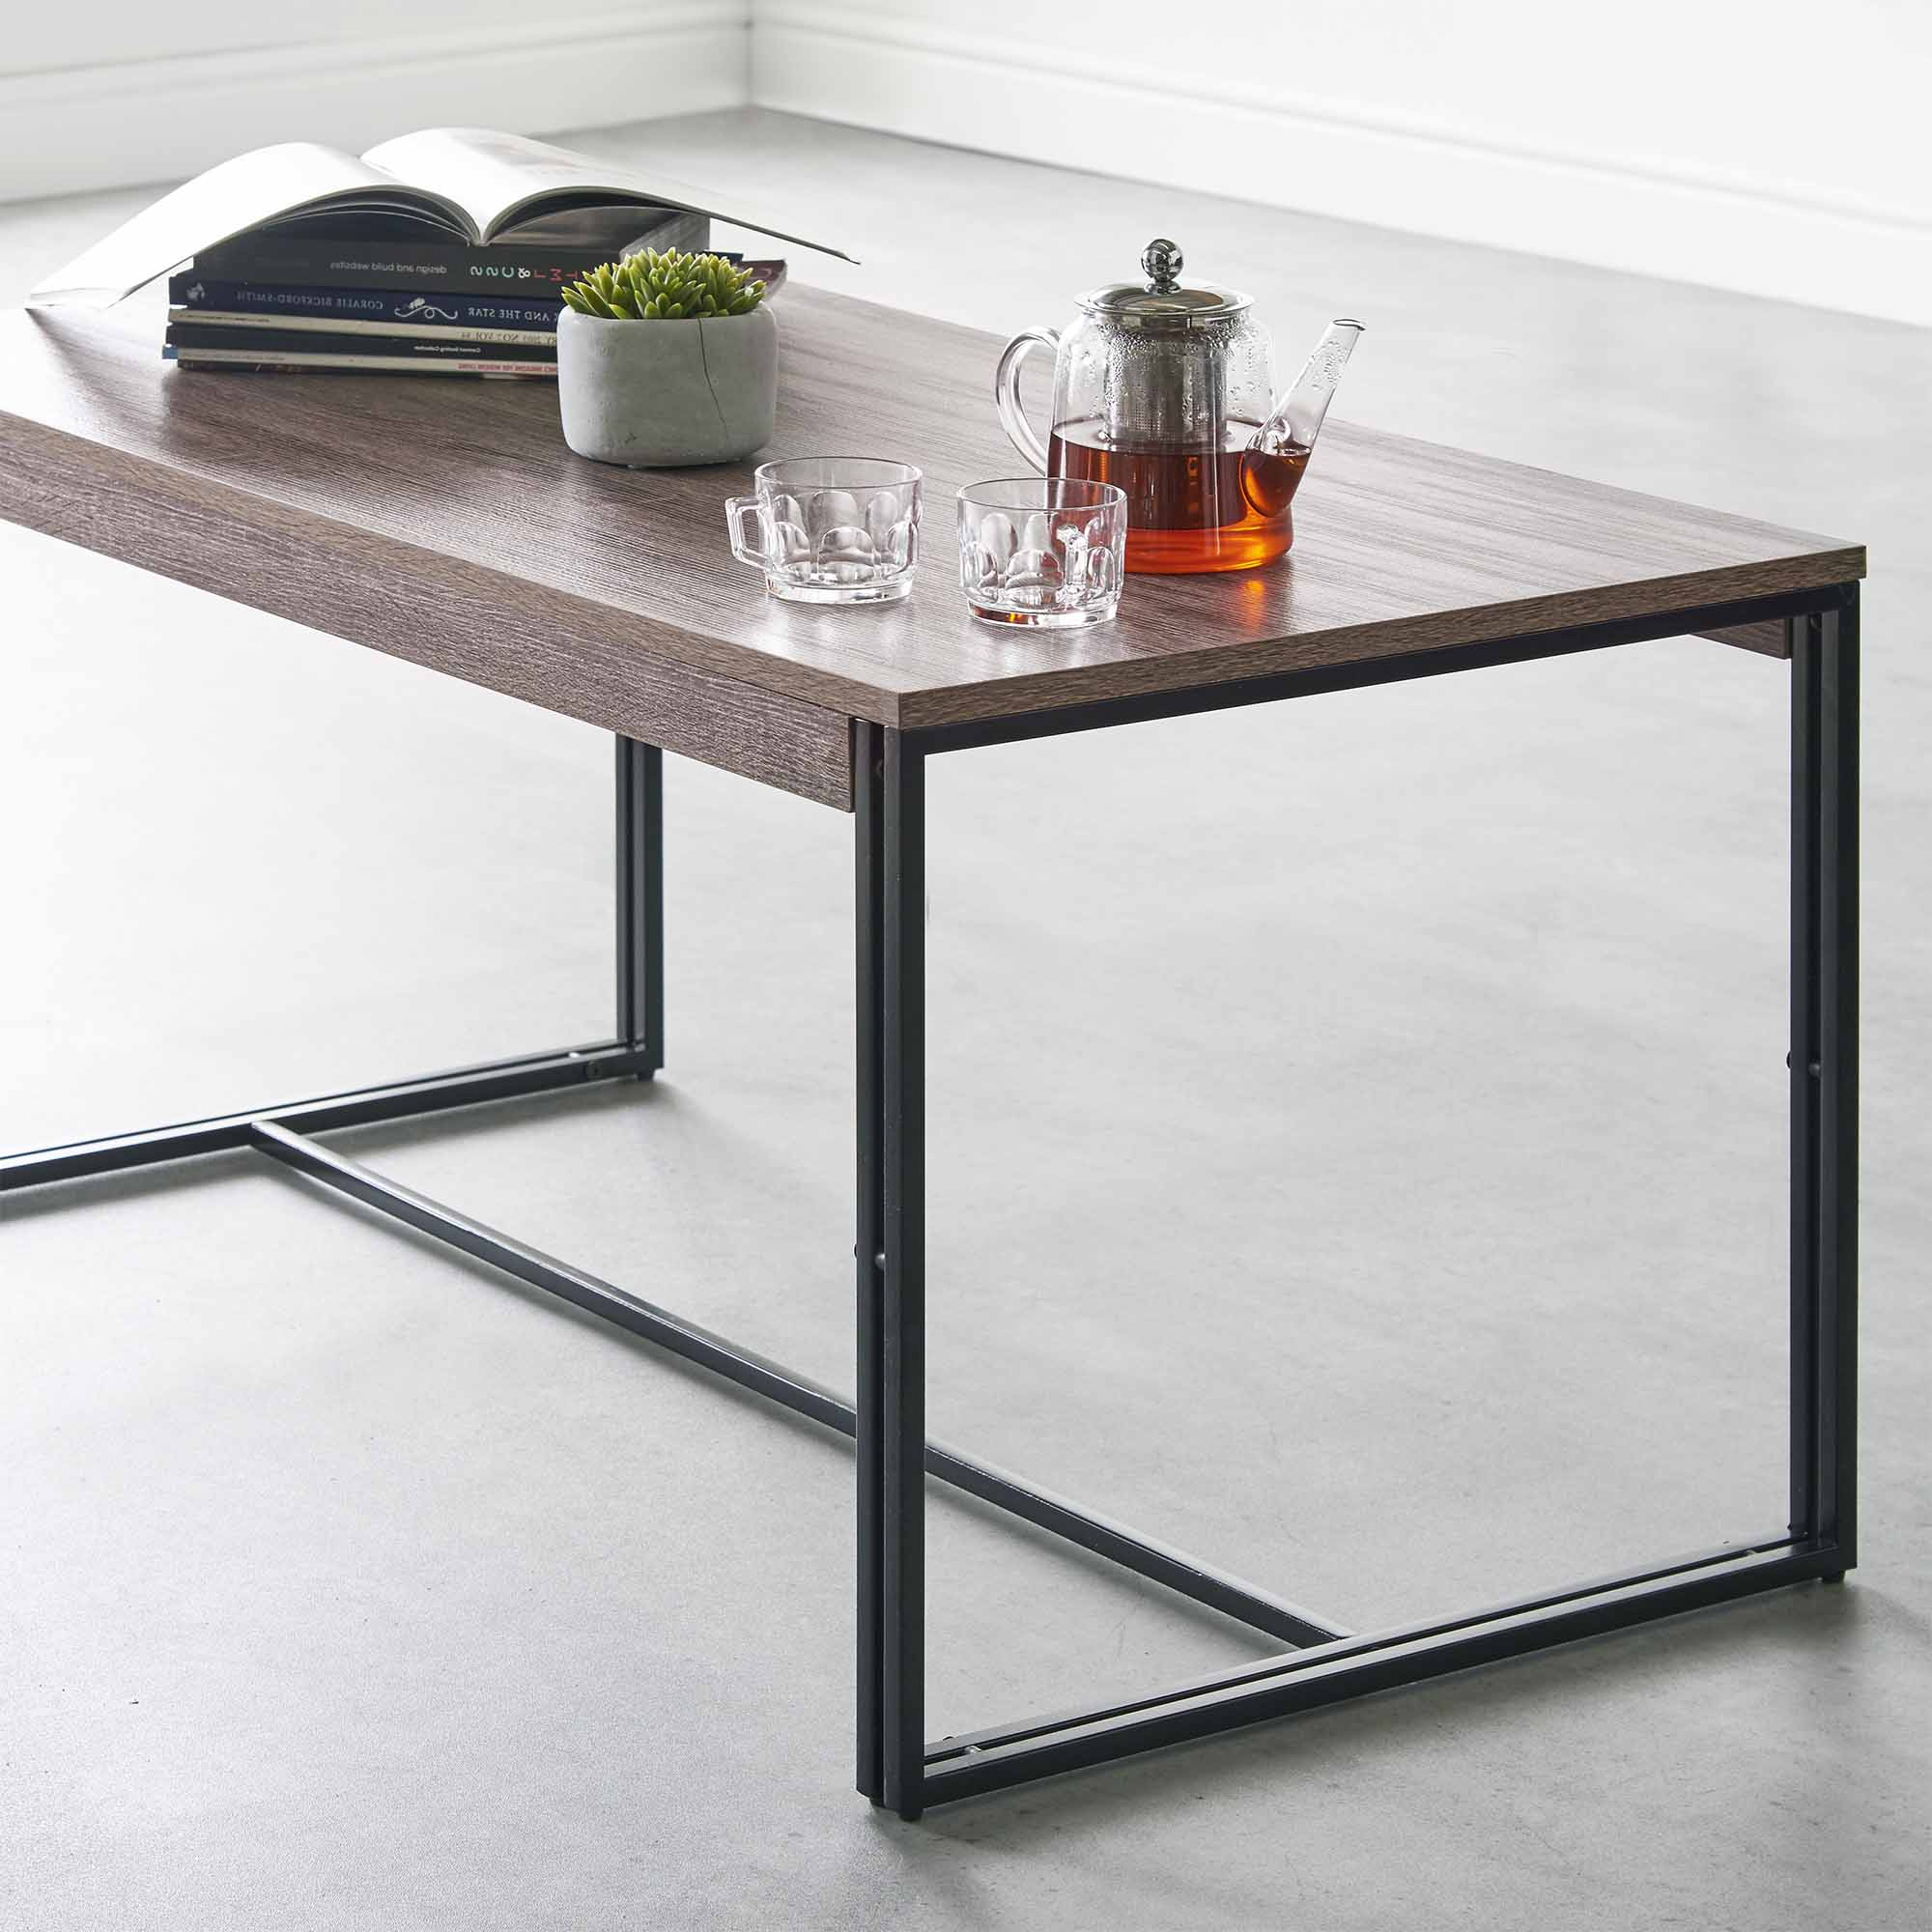 Fashionable Modern Rustic Coffee Tables Intended For Vonhaus Rustic Coffee Table Modern Industrial Urban Design Living (View 5 of 20)